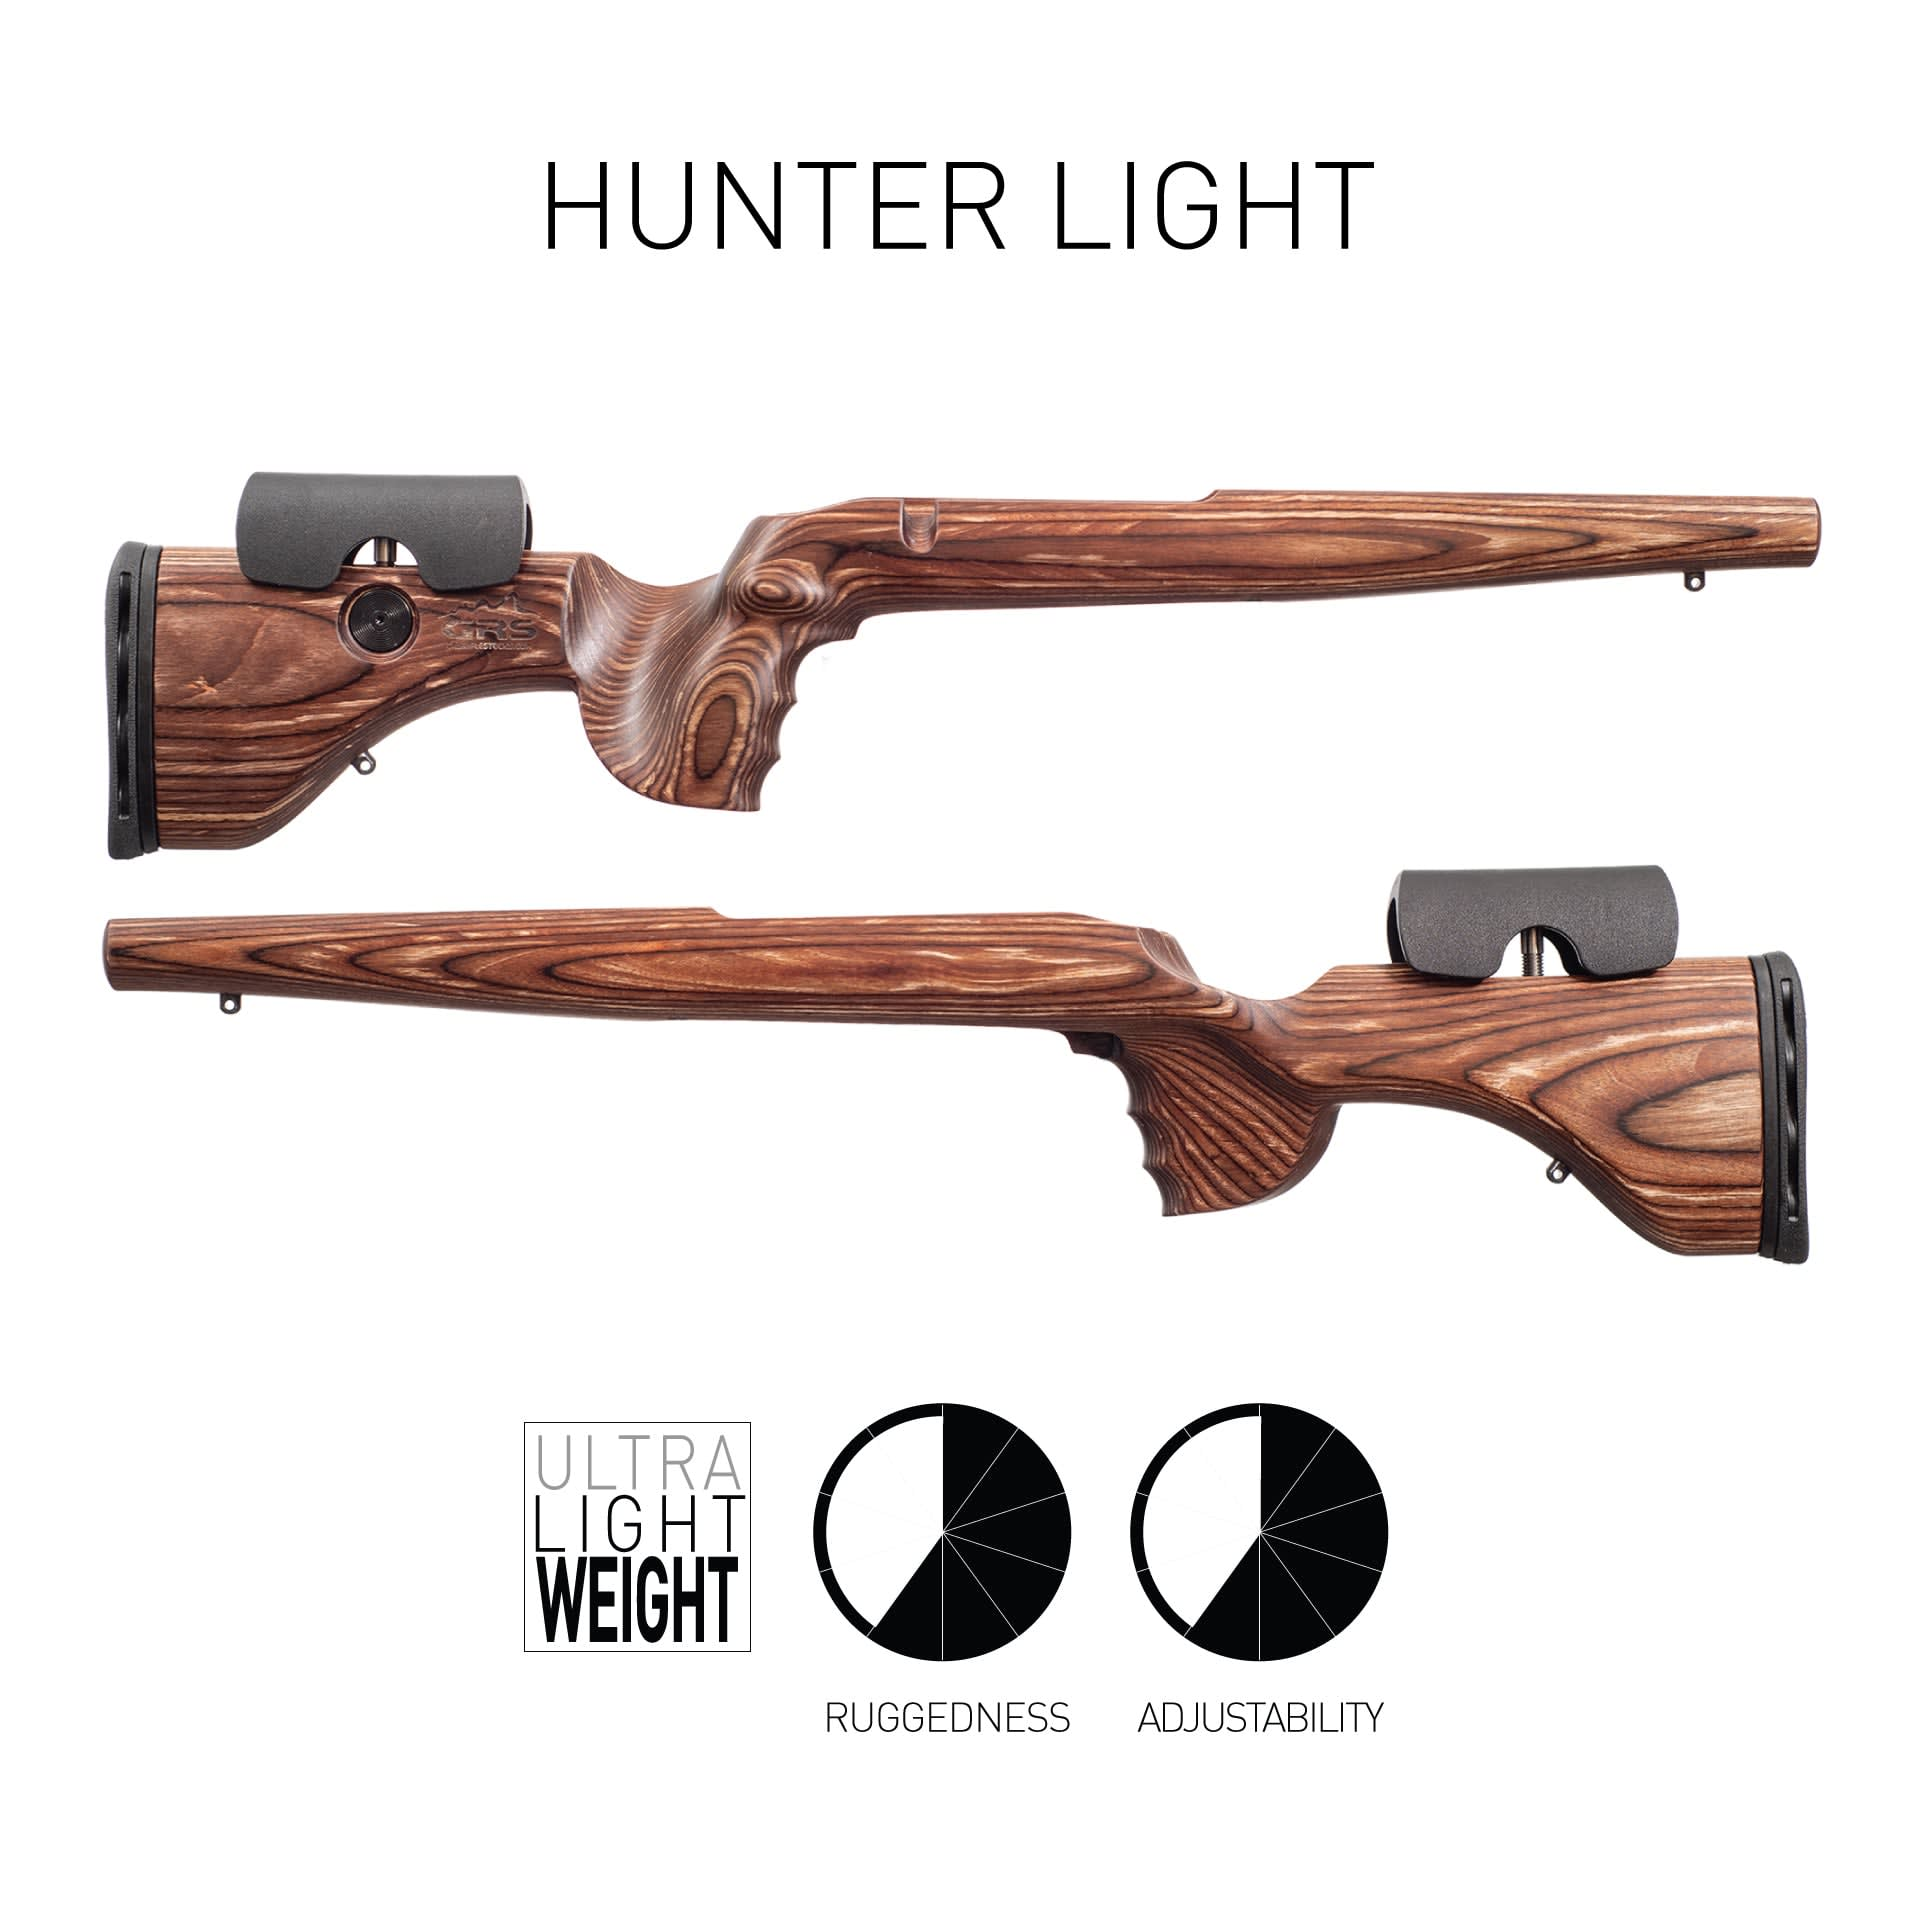 Photo for GRS Hunter Light, both sides, with rating